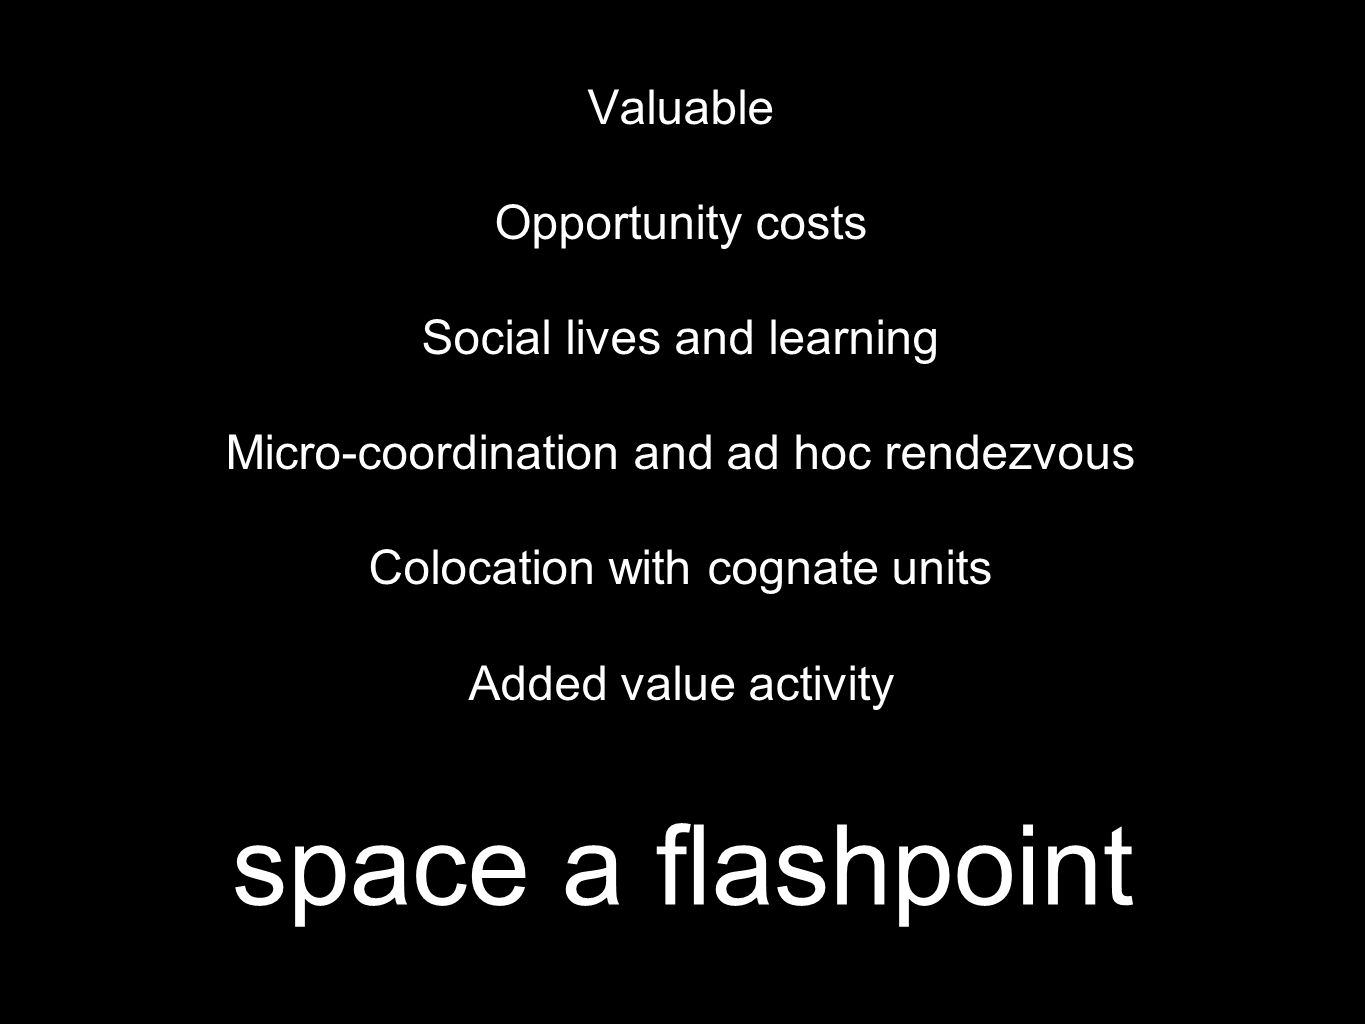 space a flashpoint Valuable Opportunity costs Social lives and learning Micro-coordination and ad hoc rendezvous Colocation with cognate units Added value activity